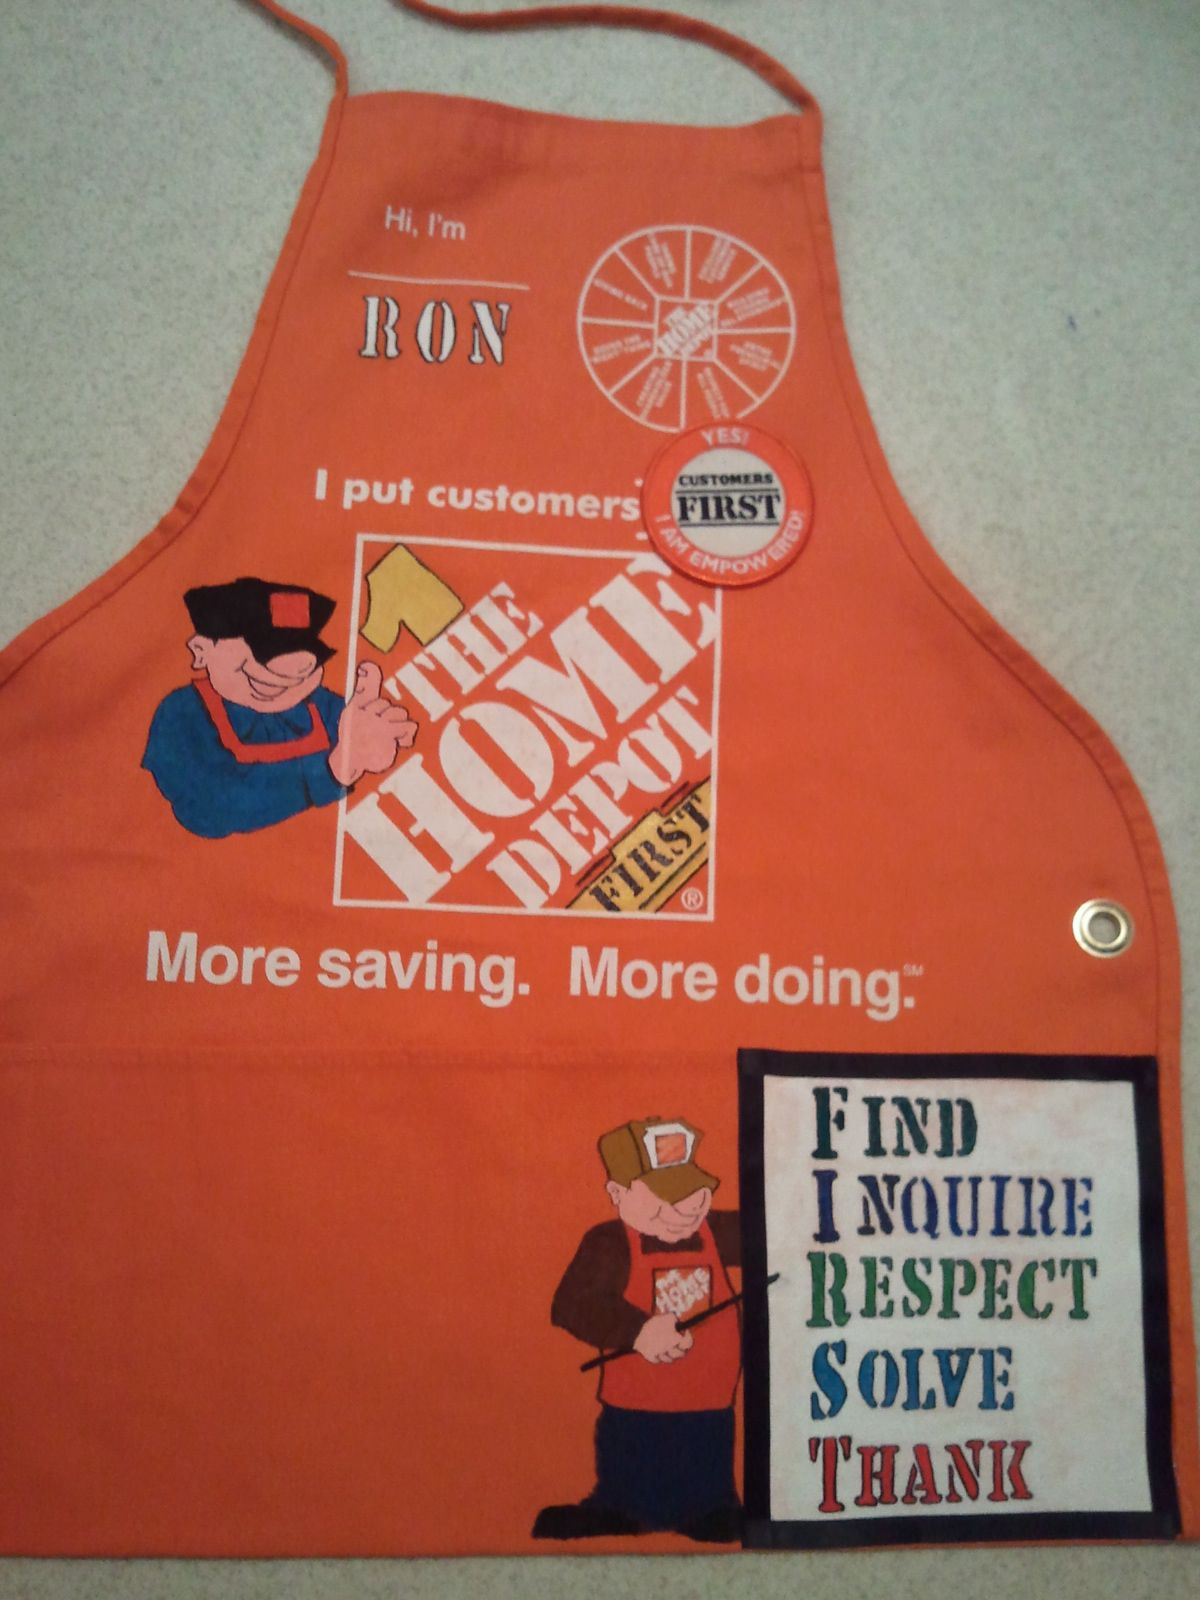 Lil Ron Ron Christmas.Lil Ron 07262011 Home Depot Aprons Home Depot Apron